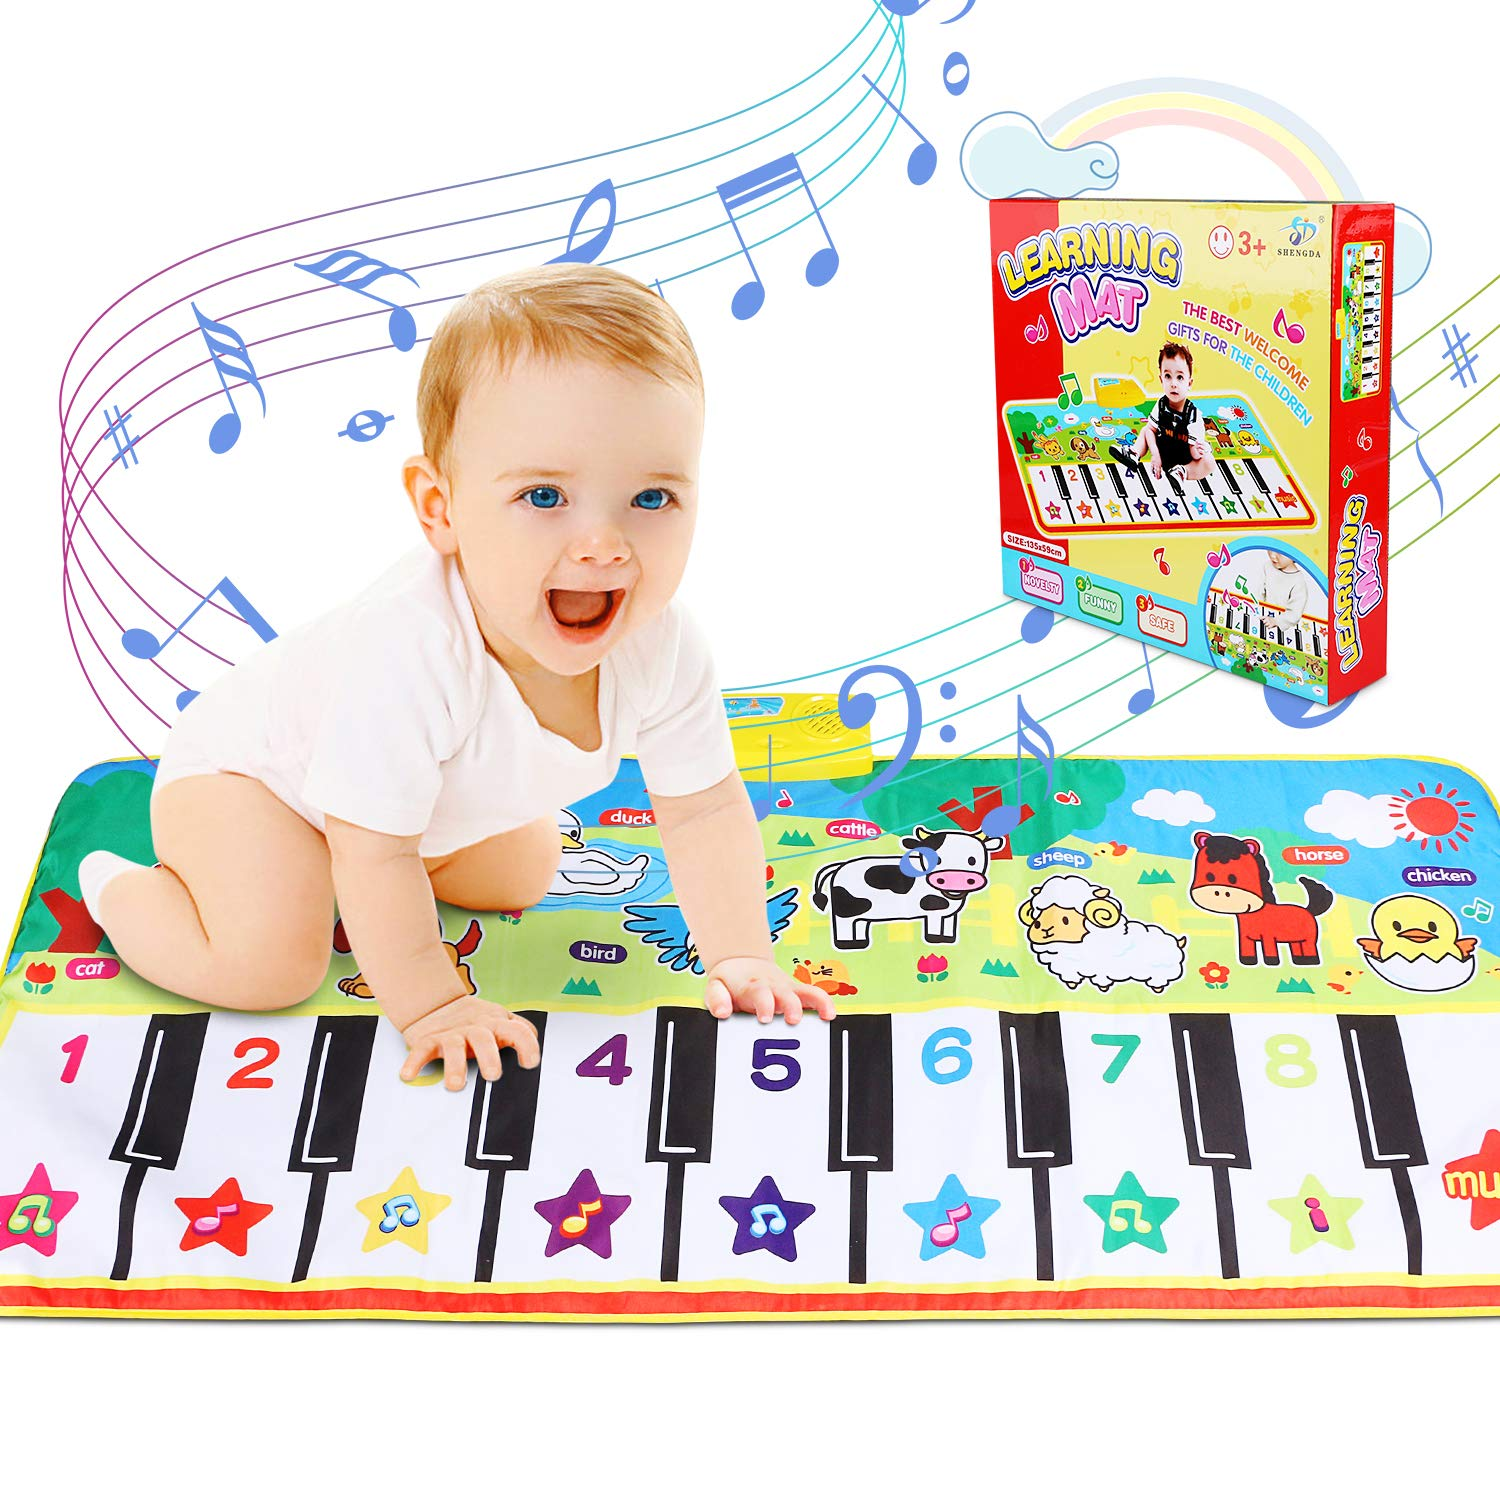 RenFox Musical Mats Keyboard Piano Play Mat Dance Floor Music Mat Animal Blanket Carpet Playmat Early Educational Toys for Kids Baby Toddlers Boy Girl(53.2x23.6 in)